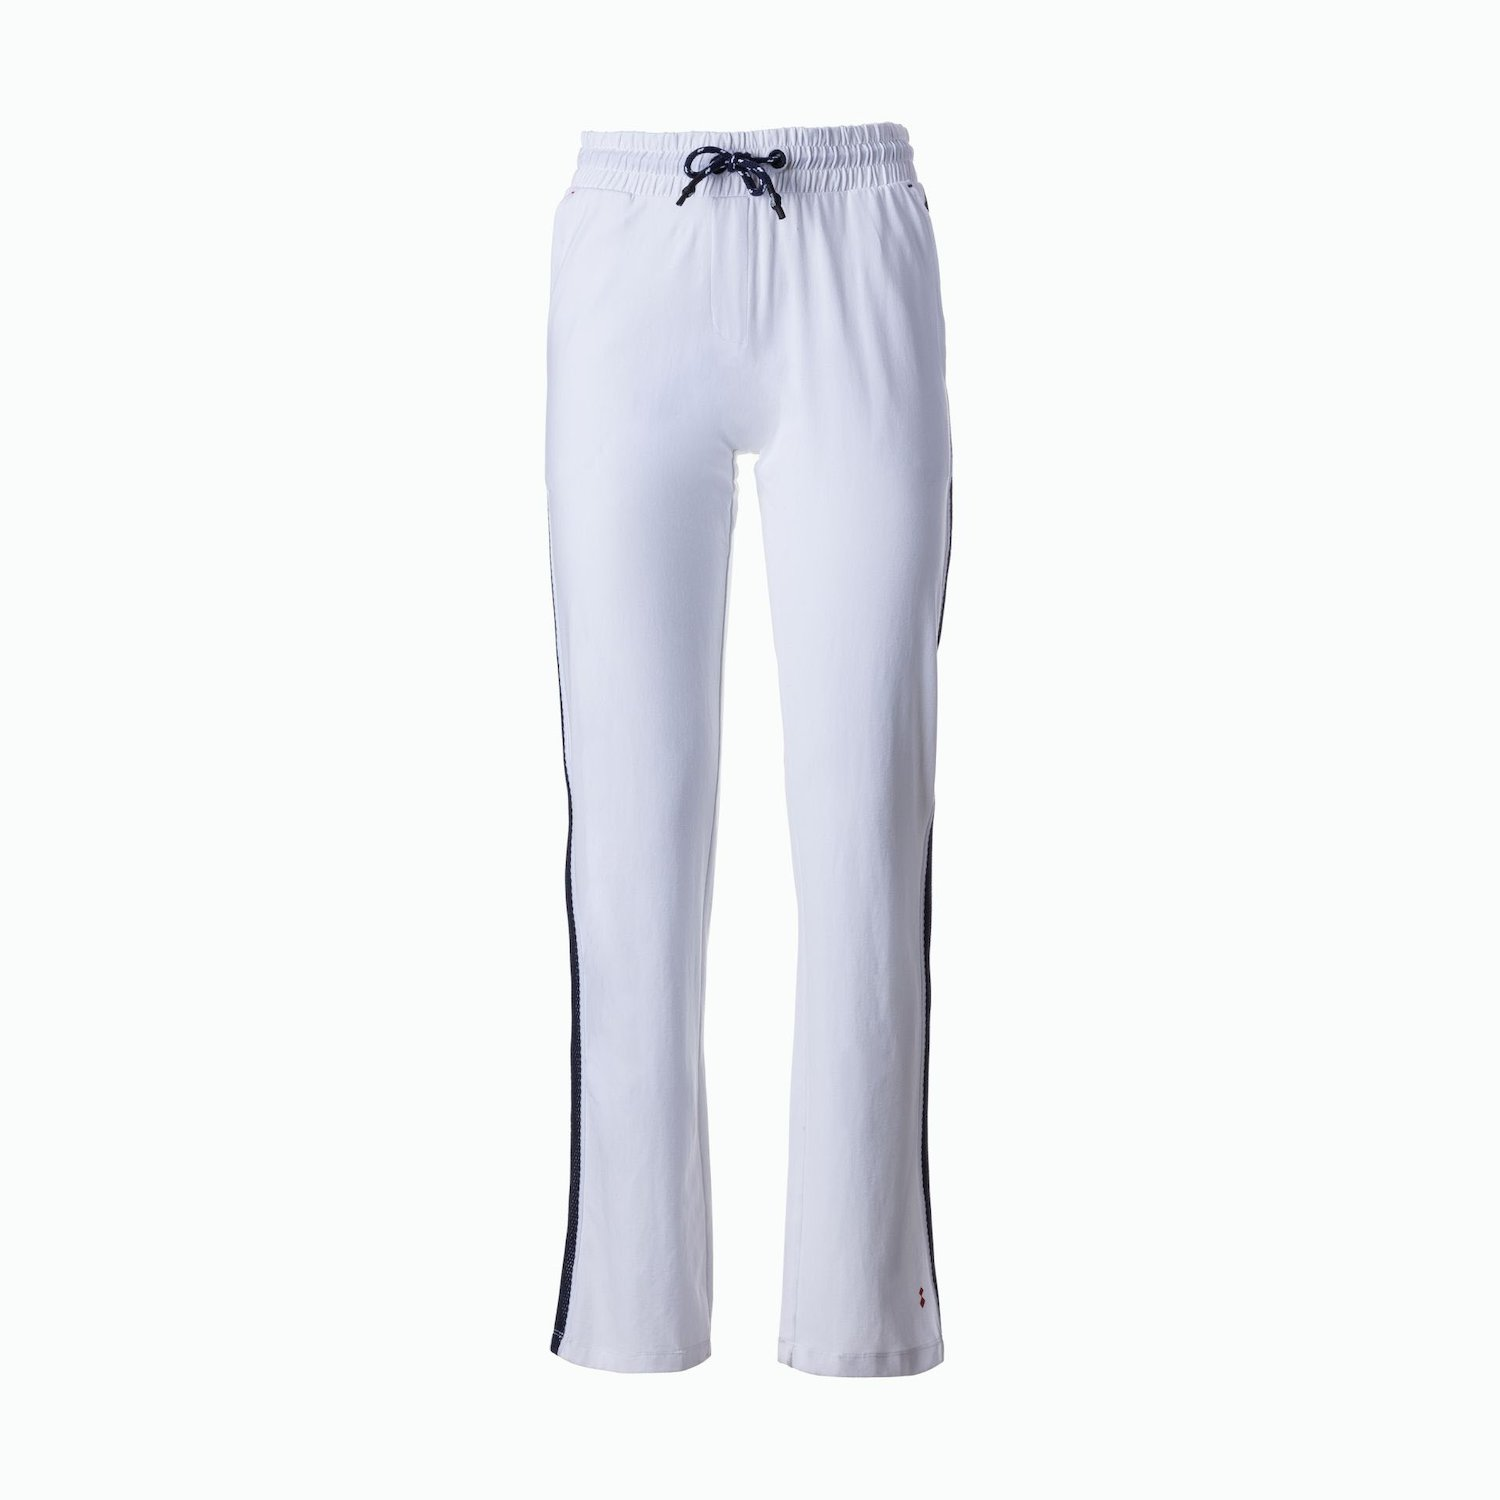 C123 Sweatpants - White